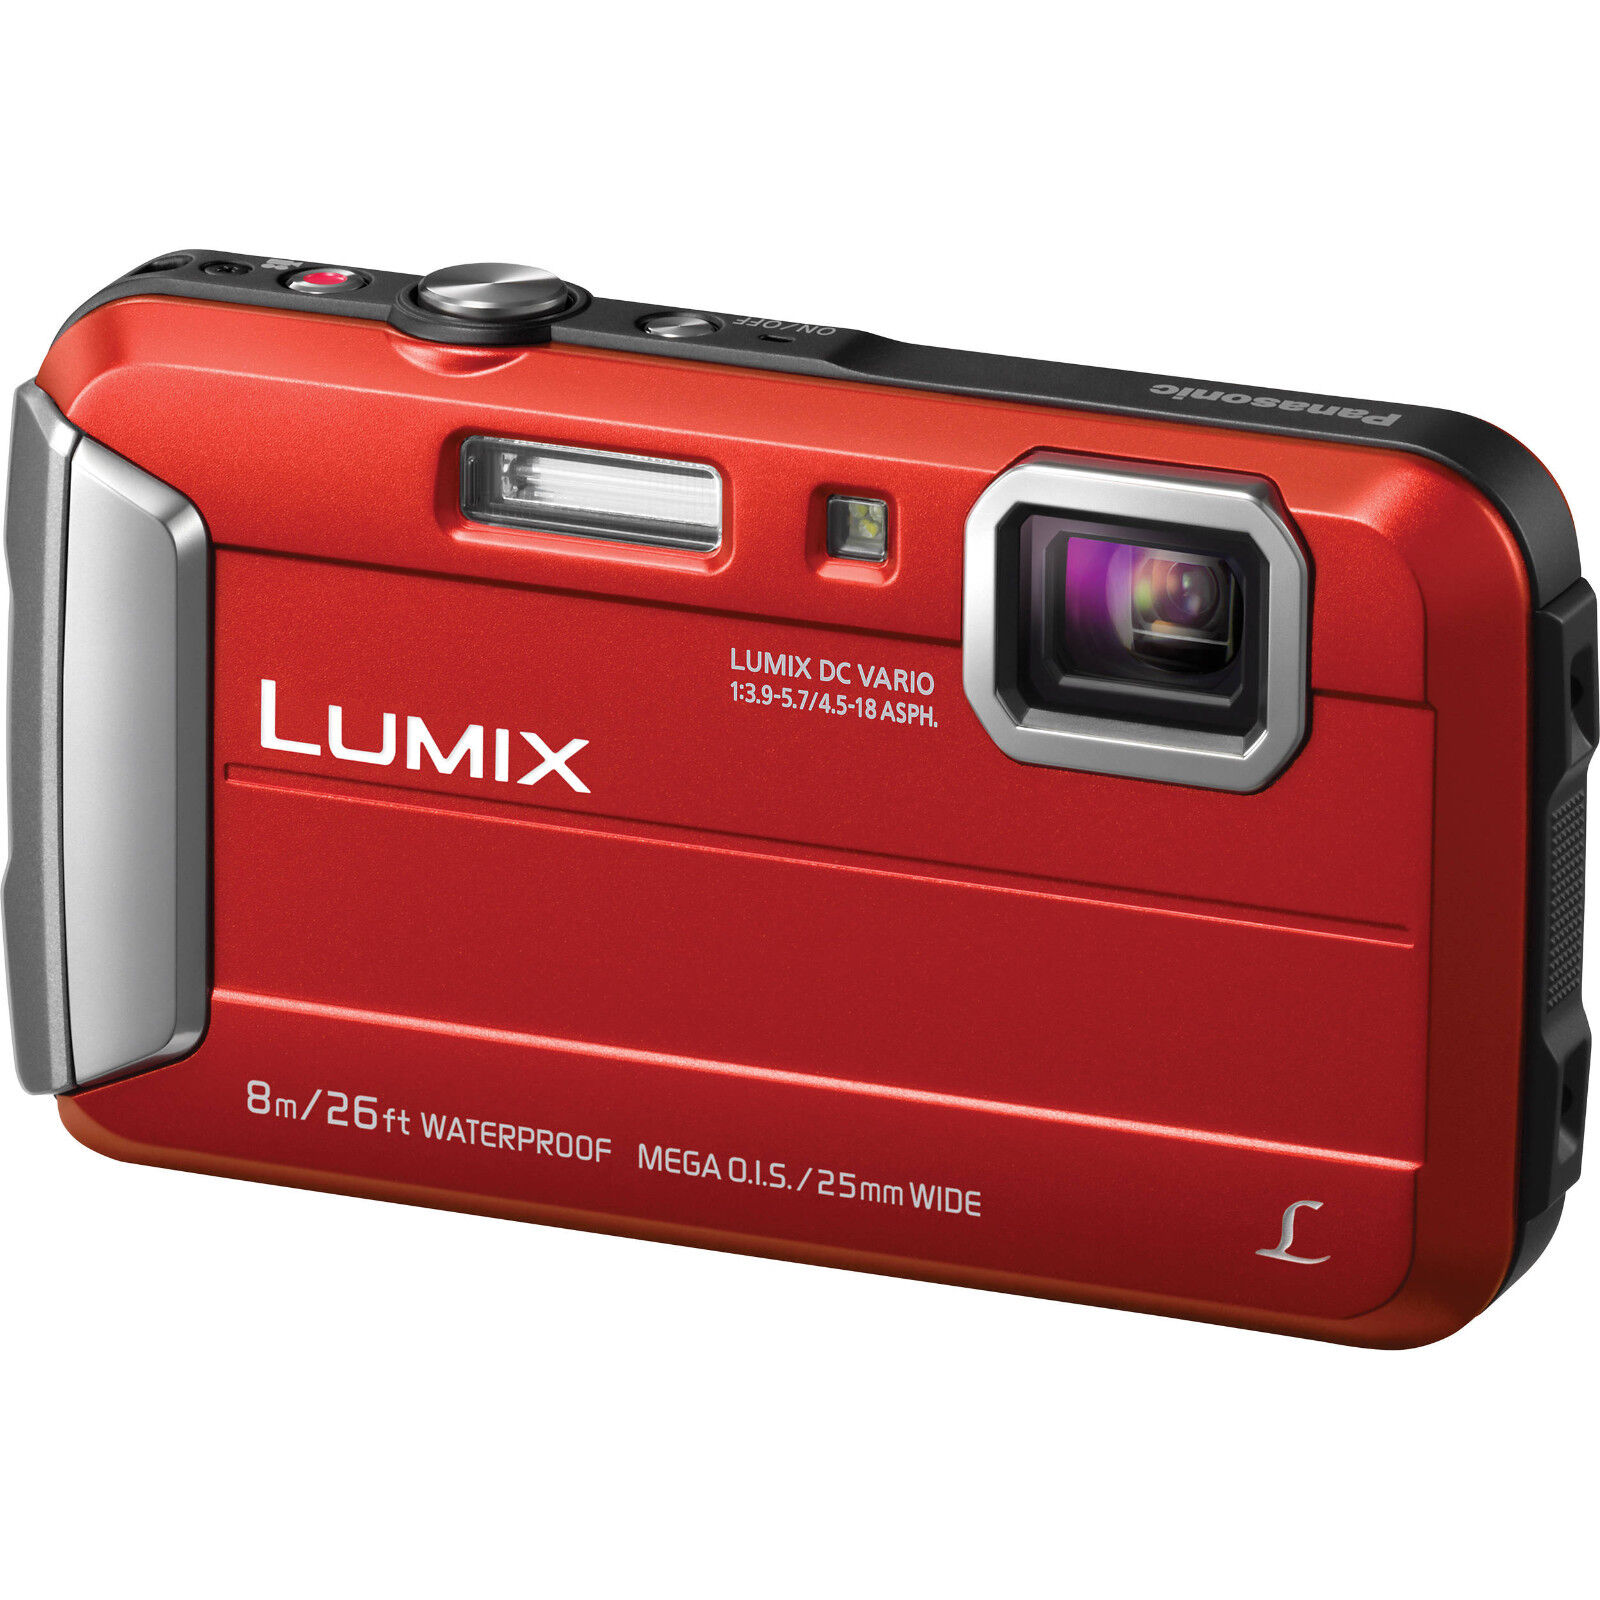 PANASONIC LUMIX Waterproof Digital Camera Underwater Camcord